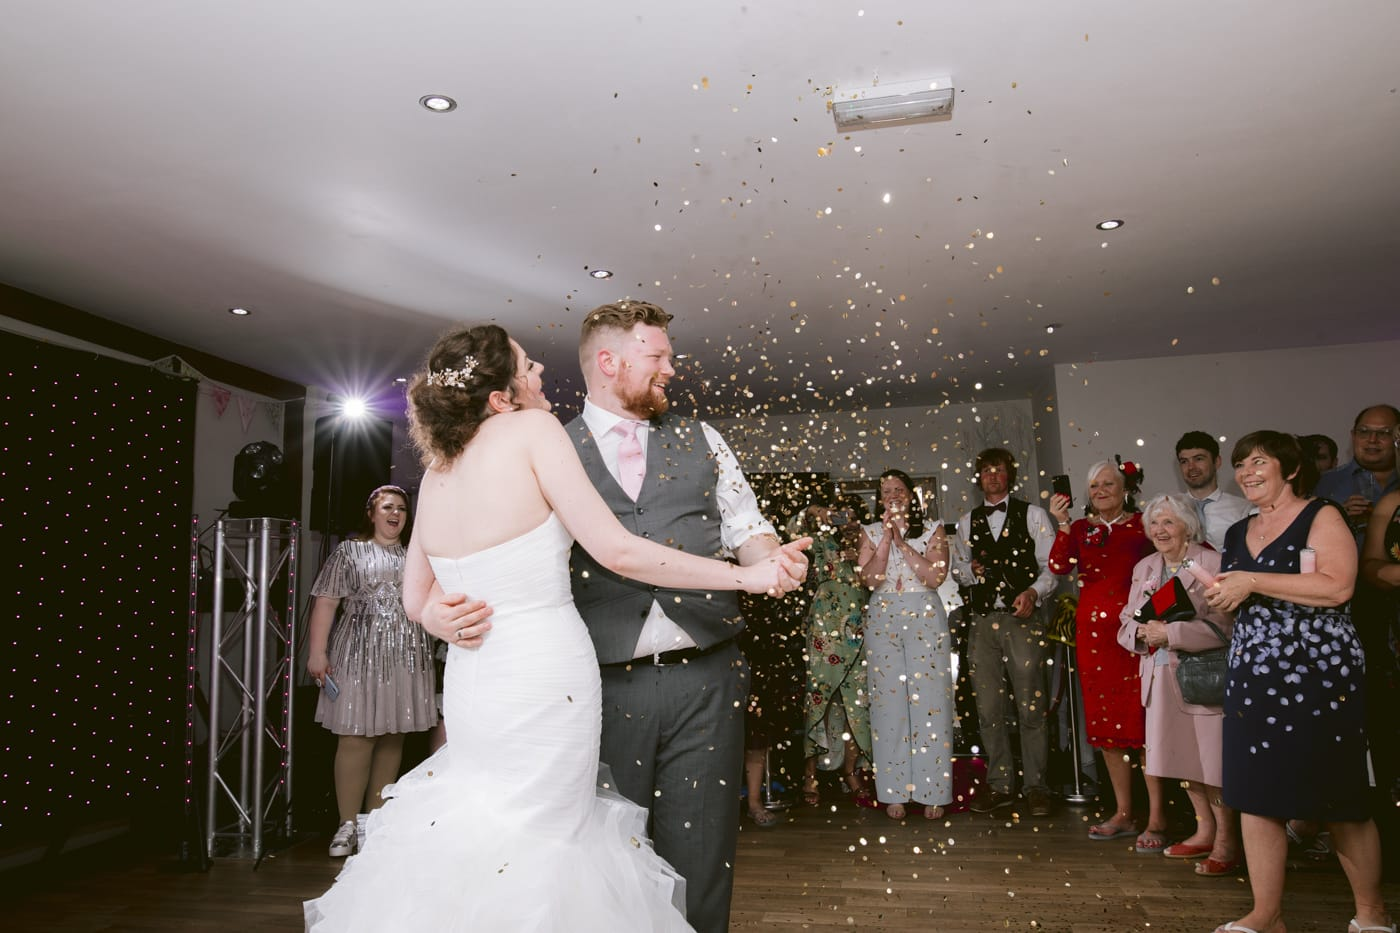 Russell and Jordan Dancing with Confetti in Main Reception Room